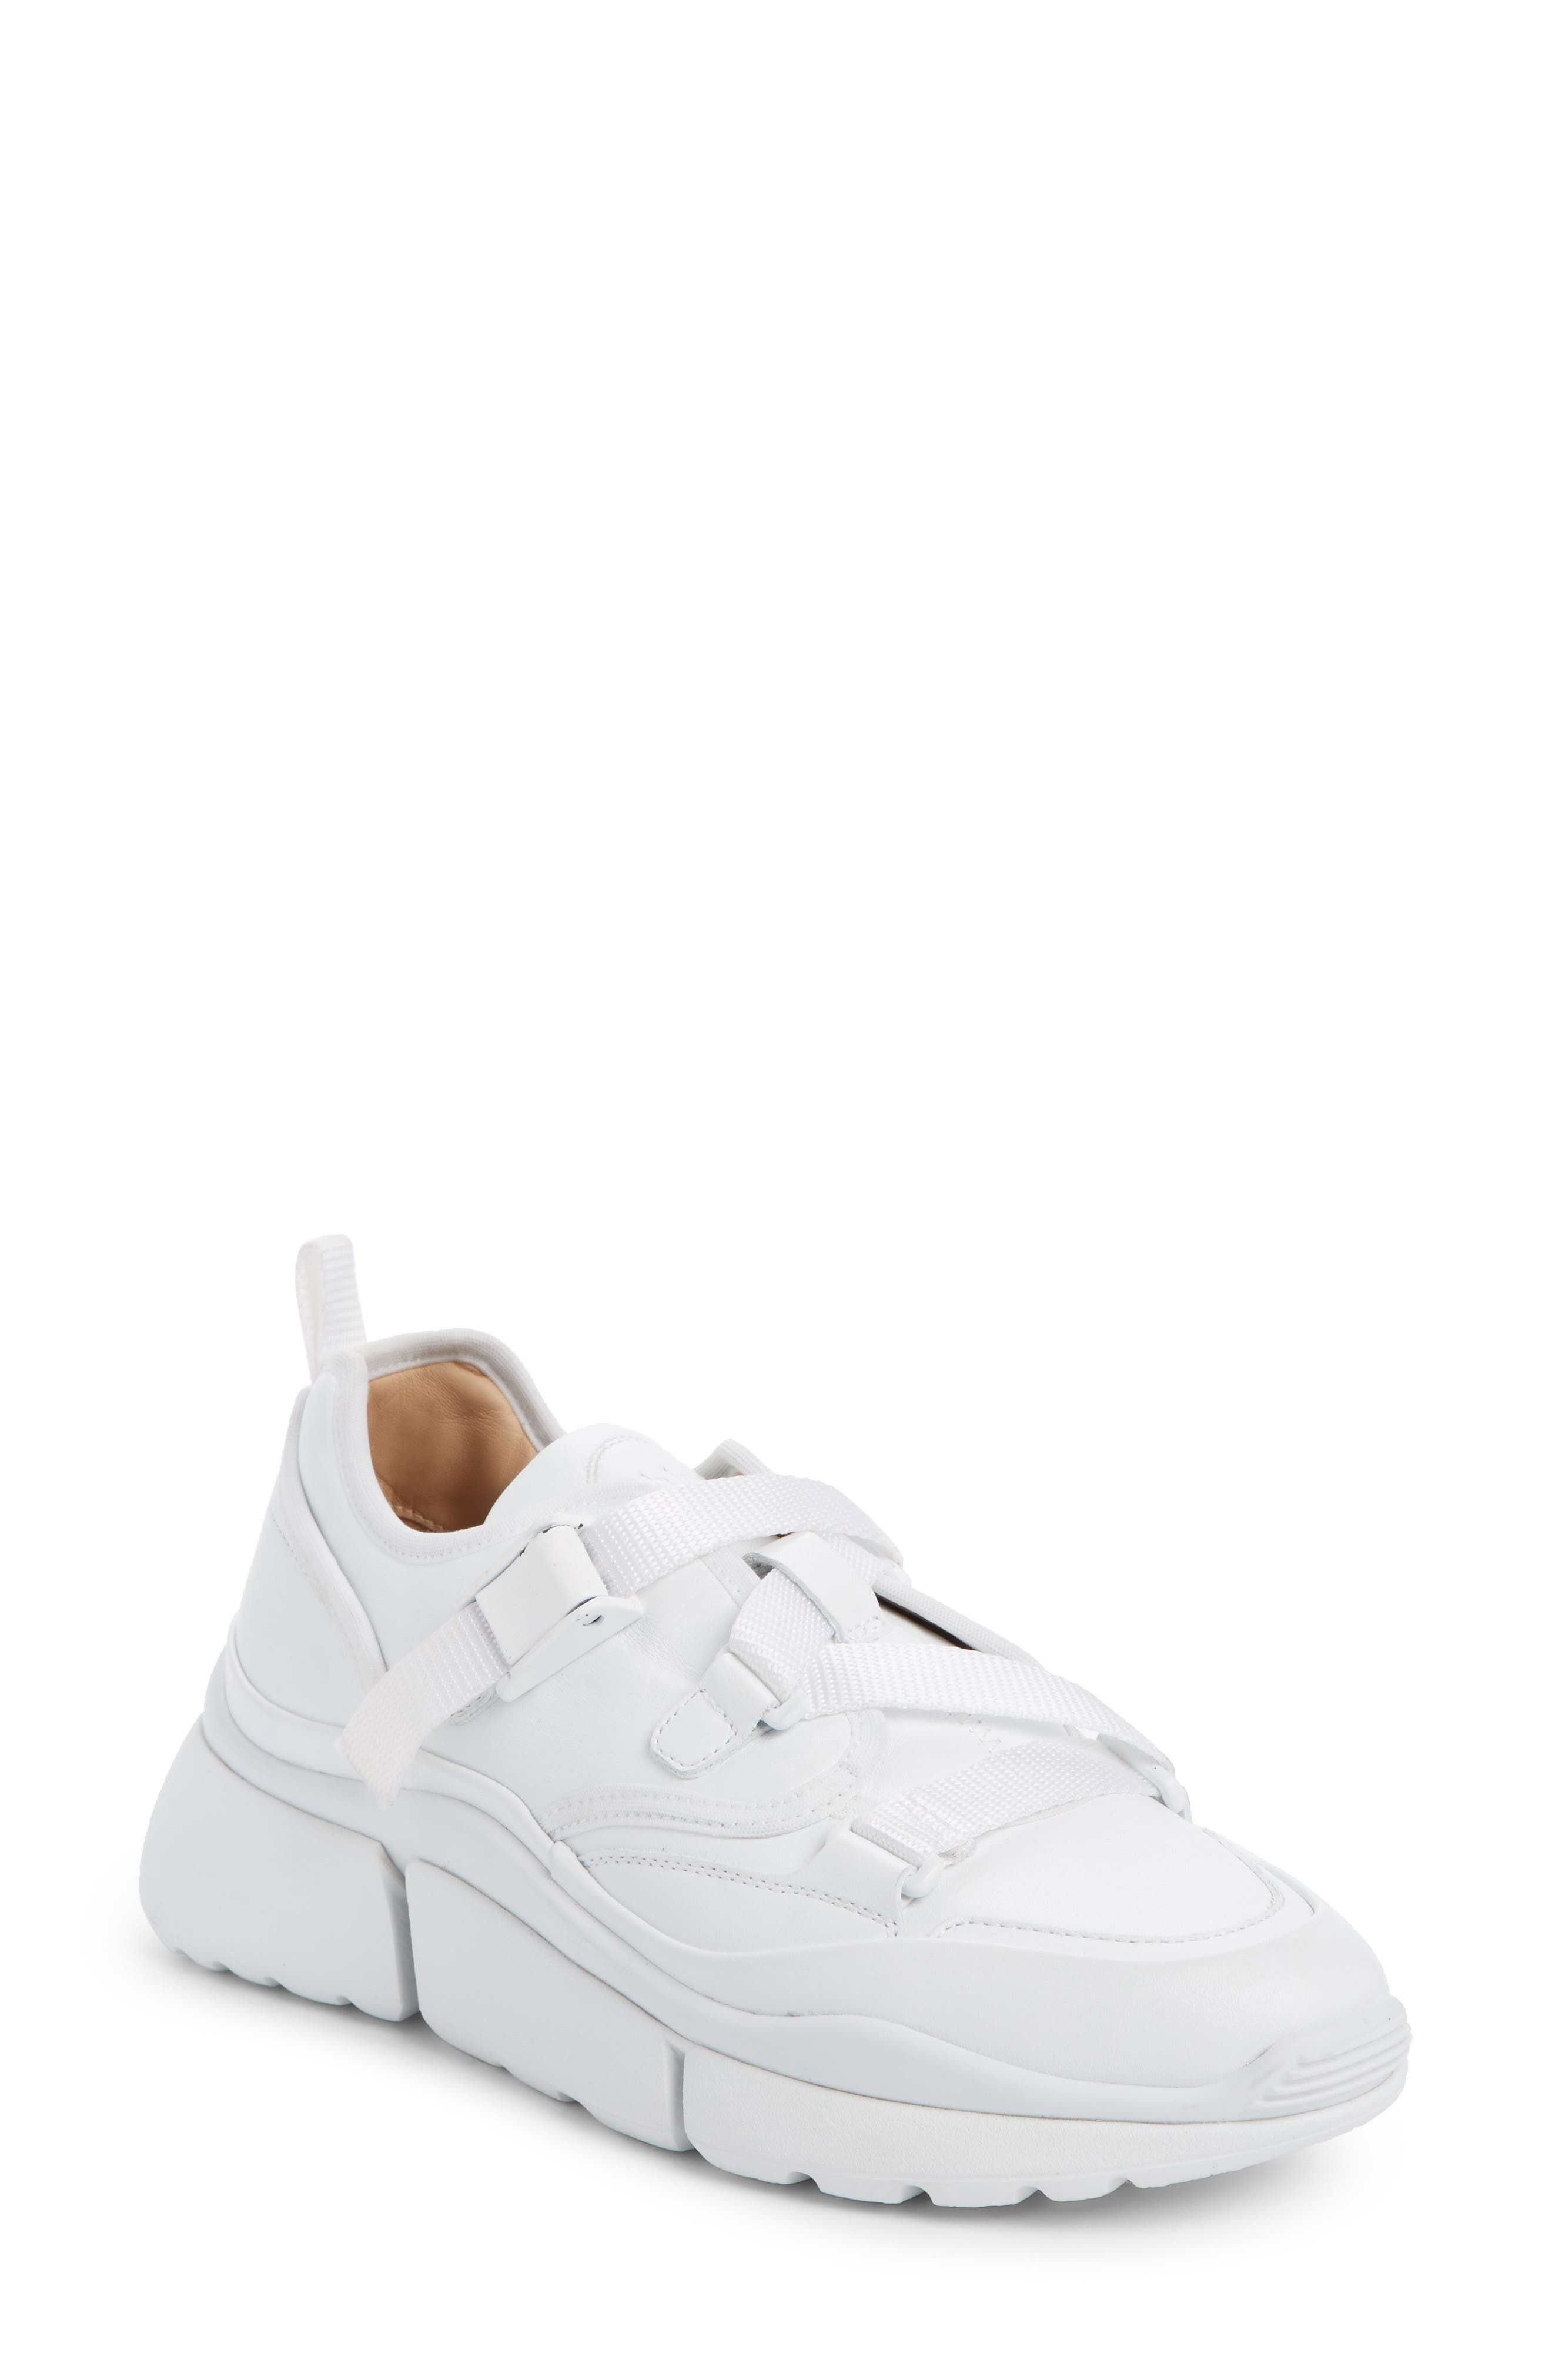 Sonnie Sneaker,                             Main thumbnail 1, color,                             WHITE LEATHER